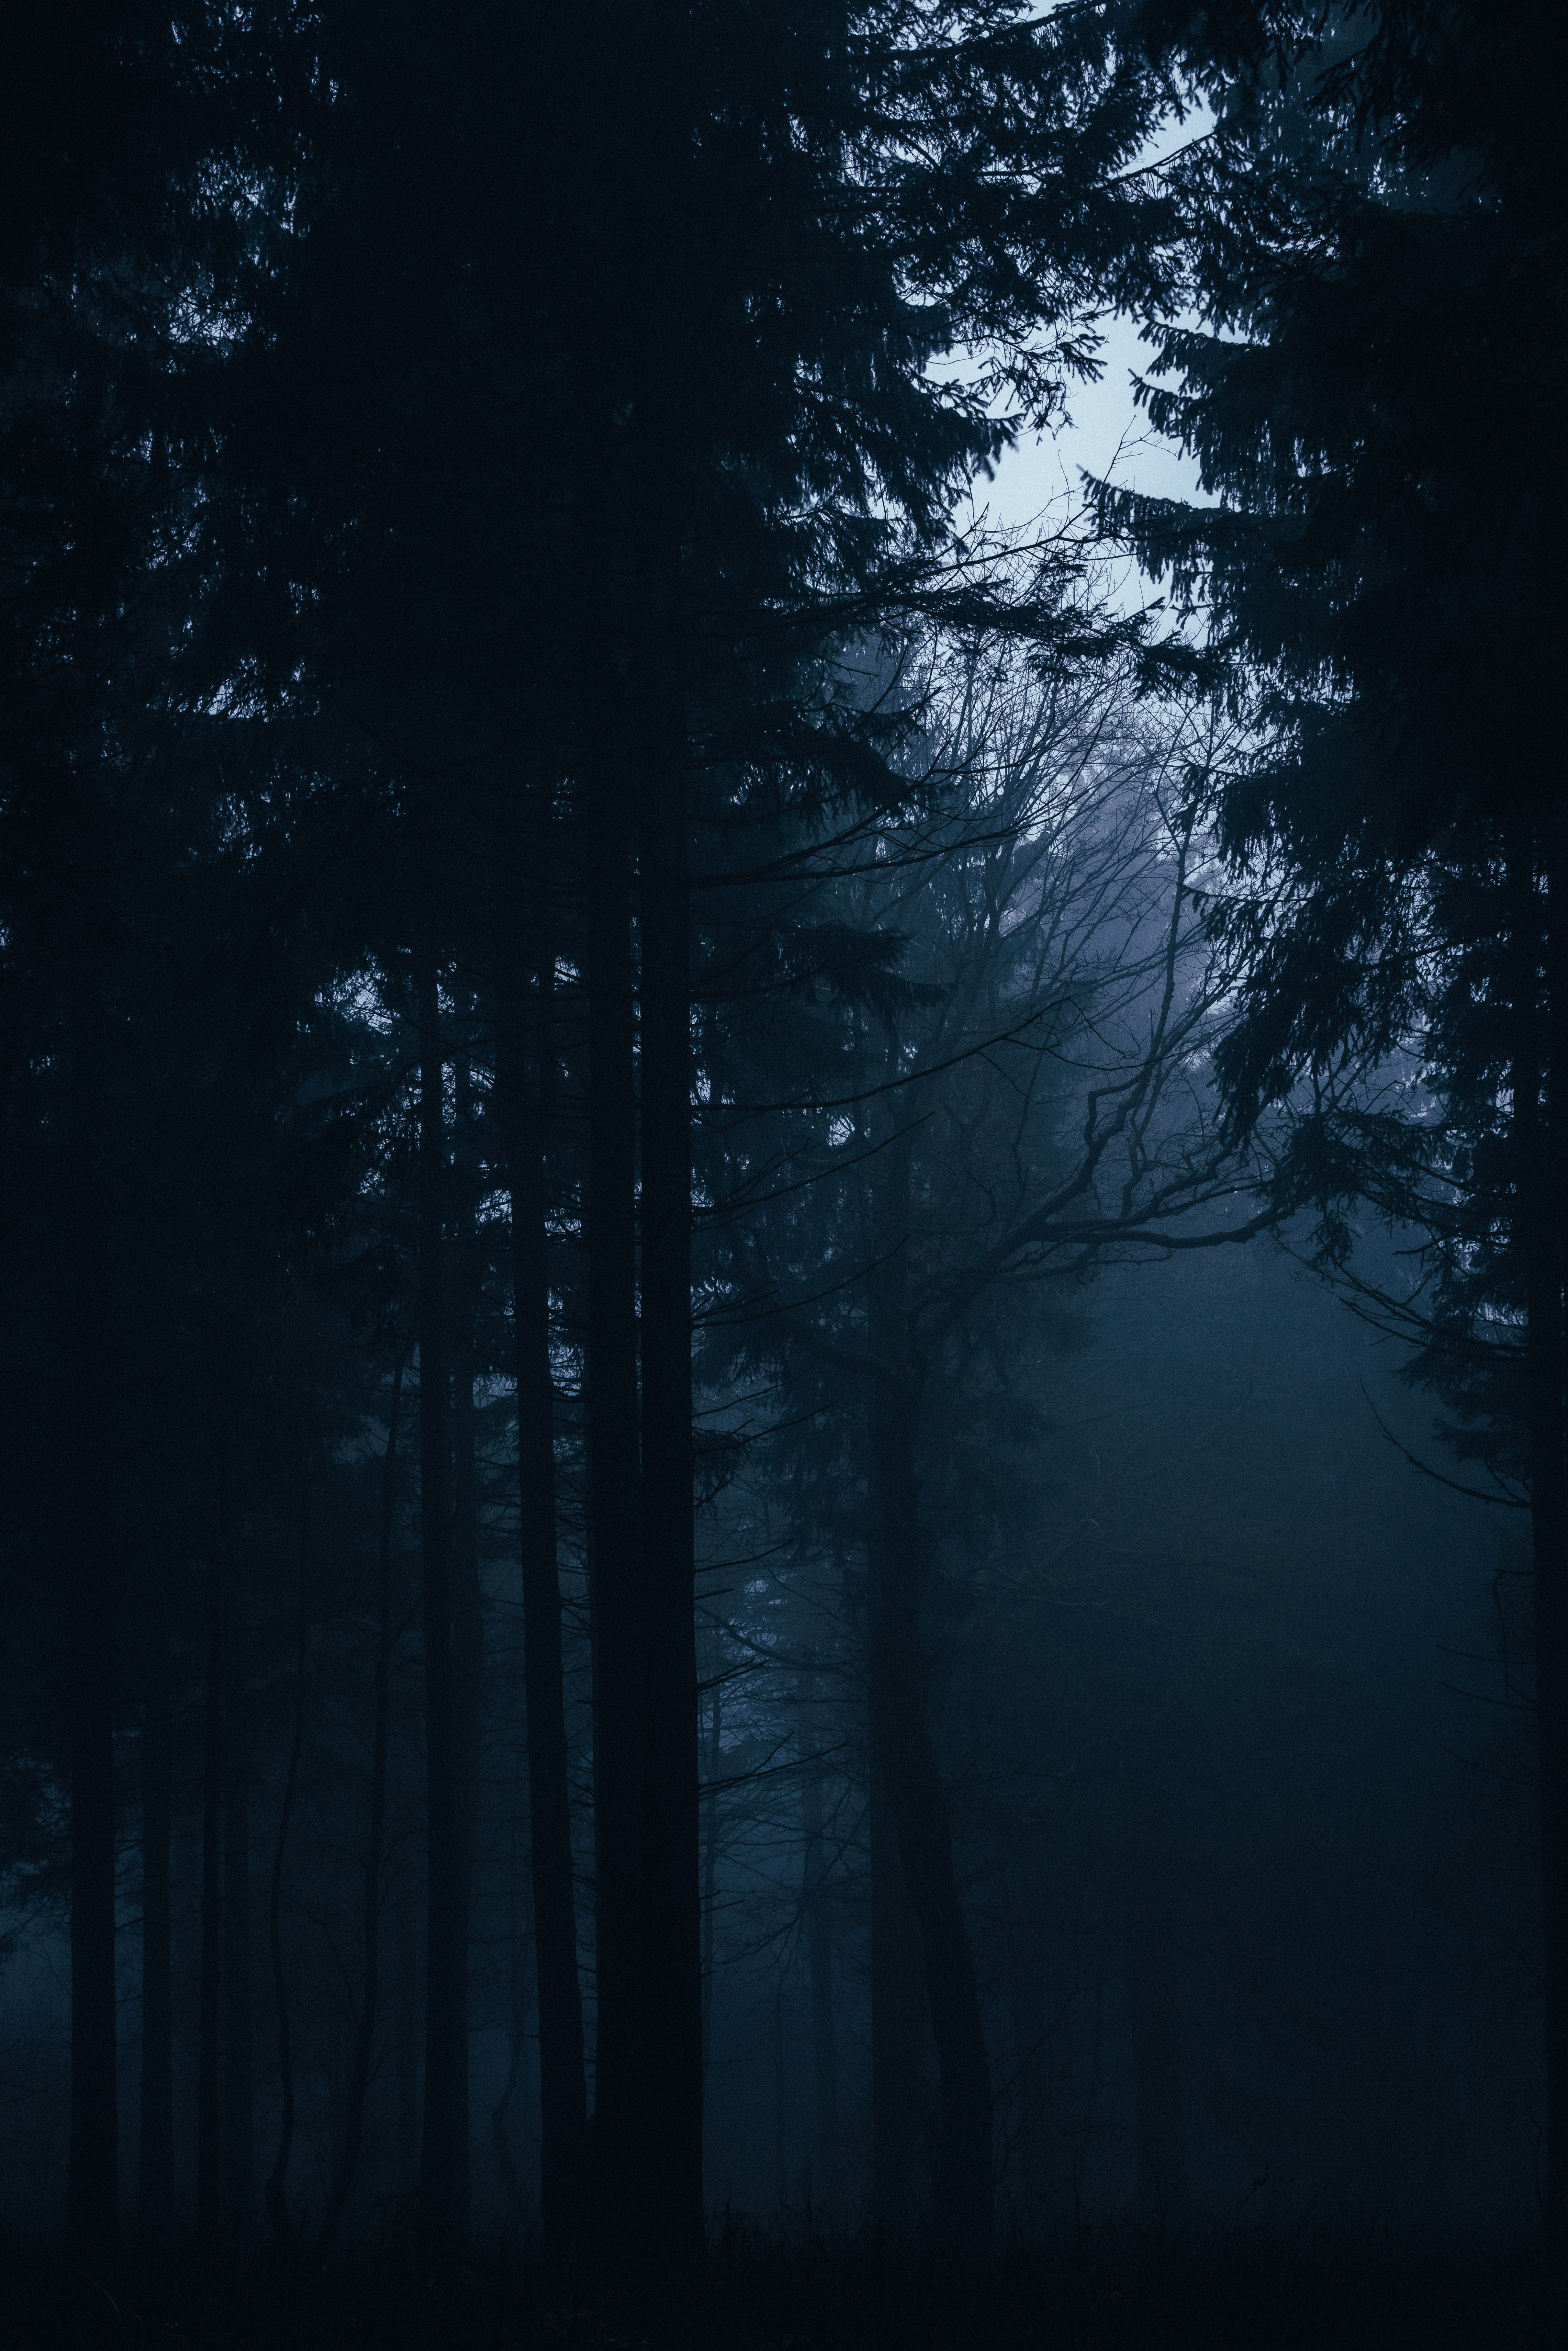 140441 download wallpaper Dark, Trees, Forest, Fog, Darkness screensavers and pictures for free